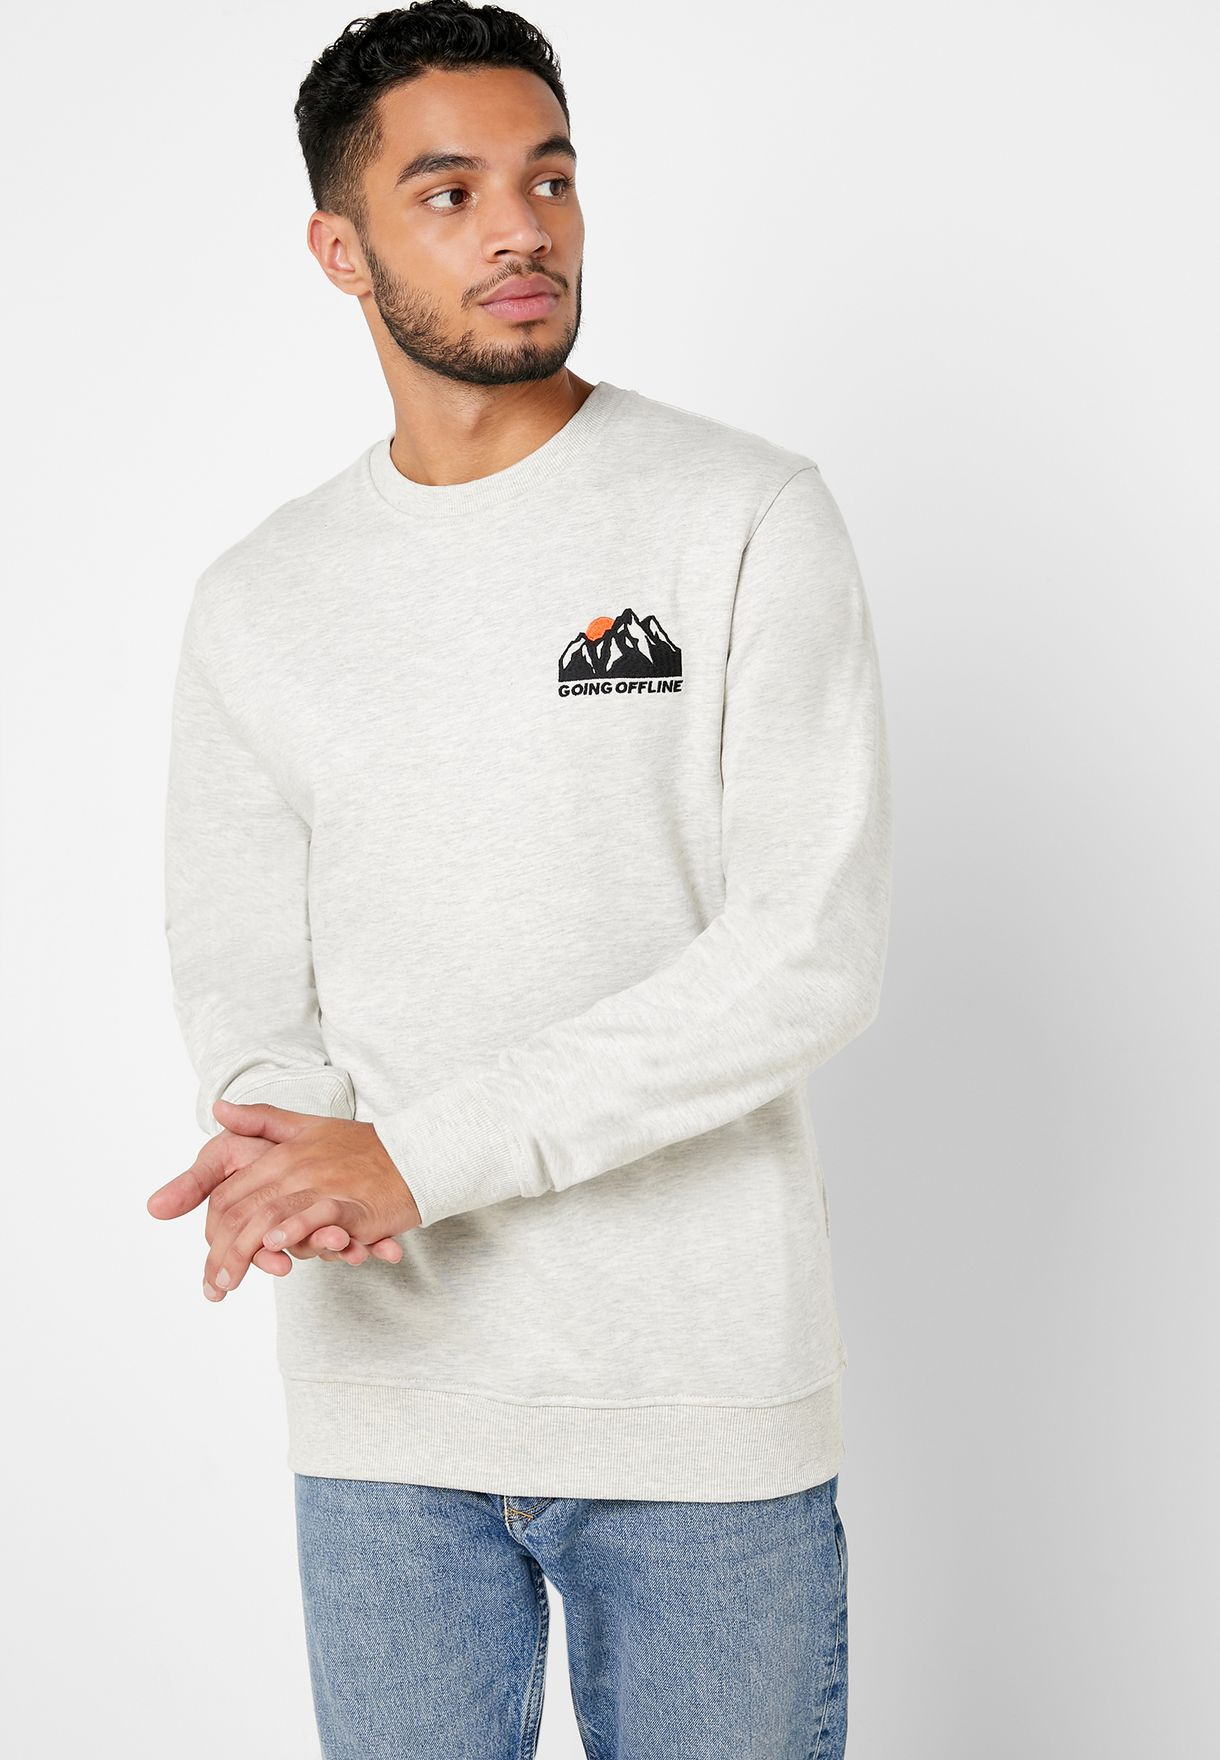 Publish Sweatshirt